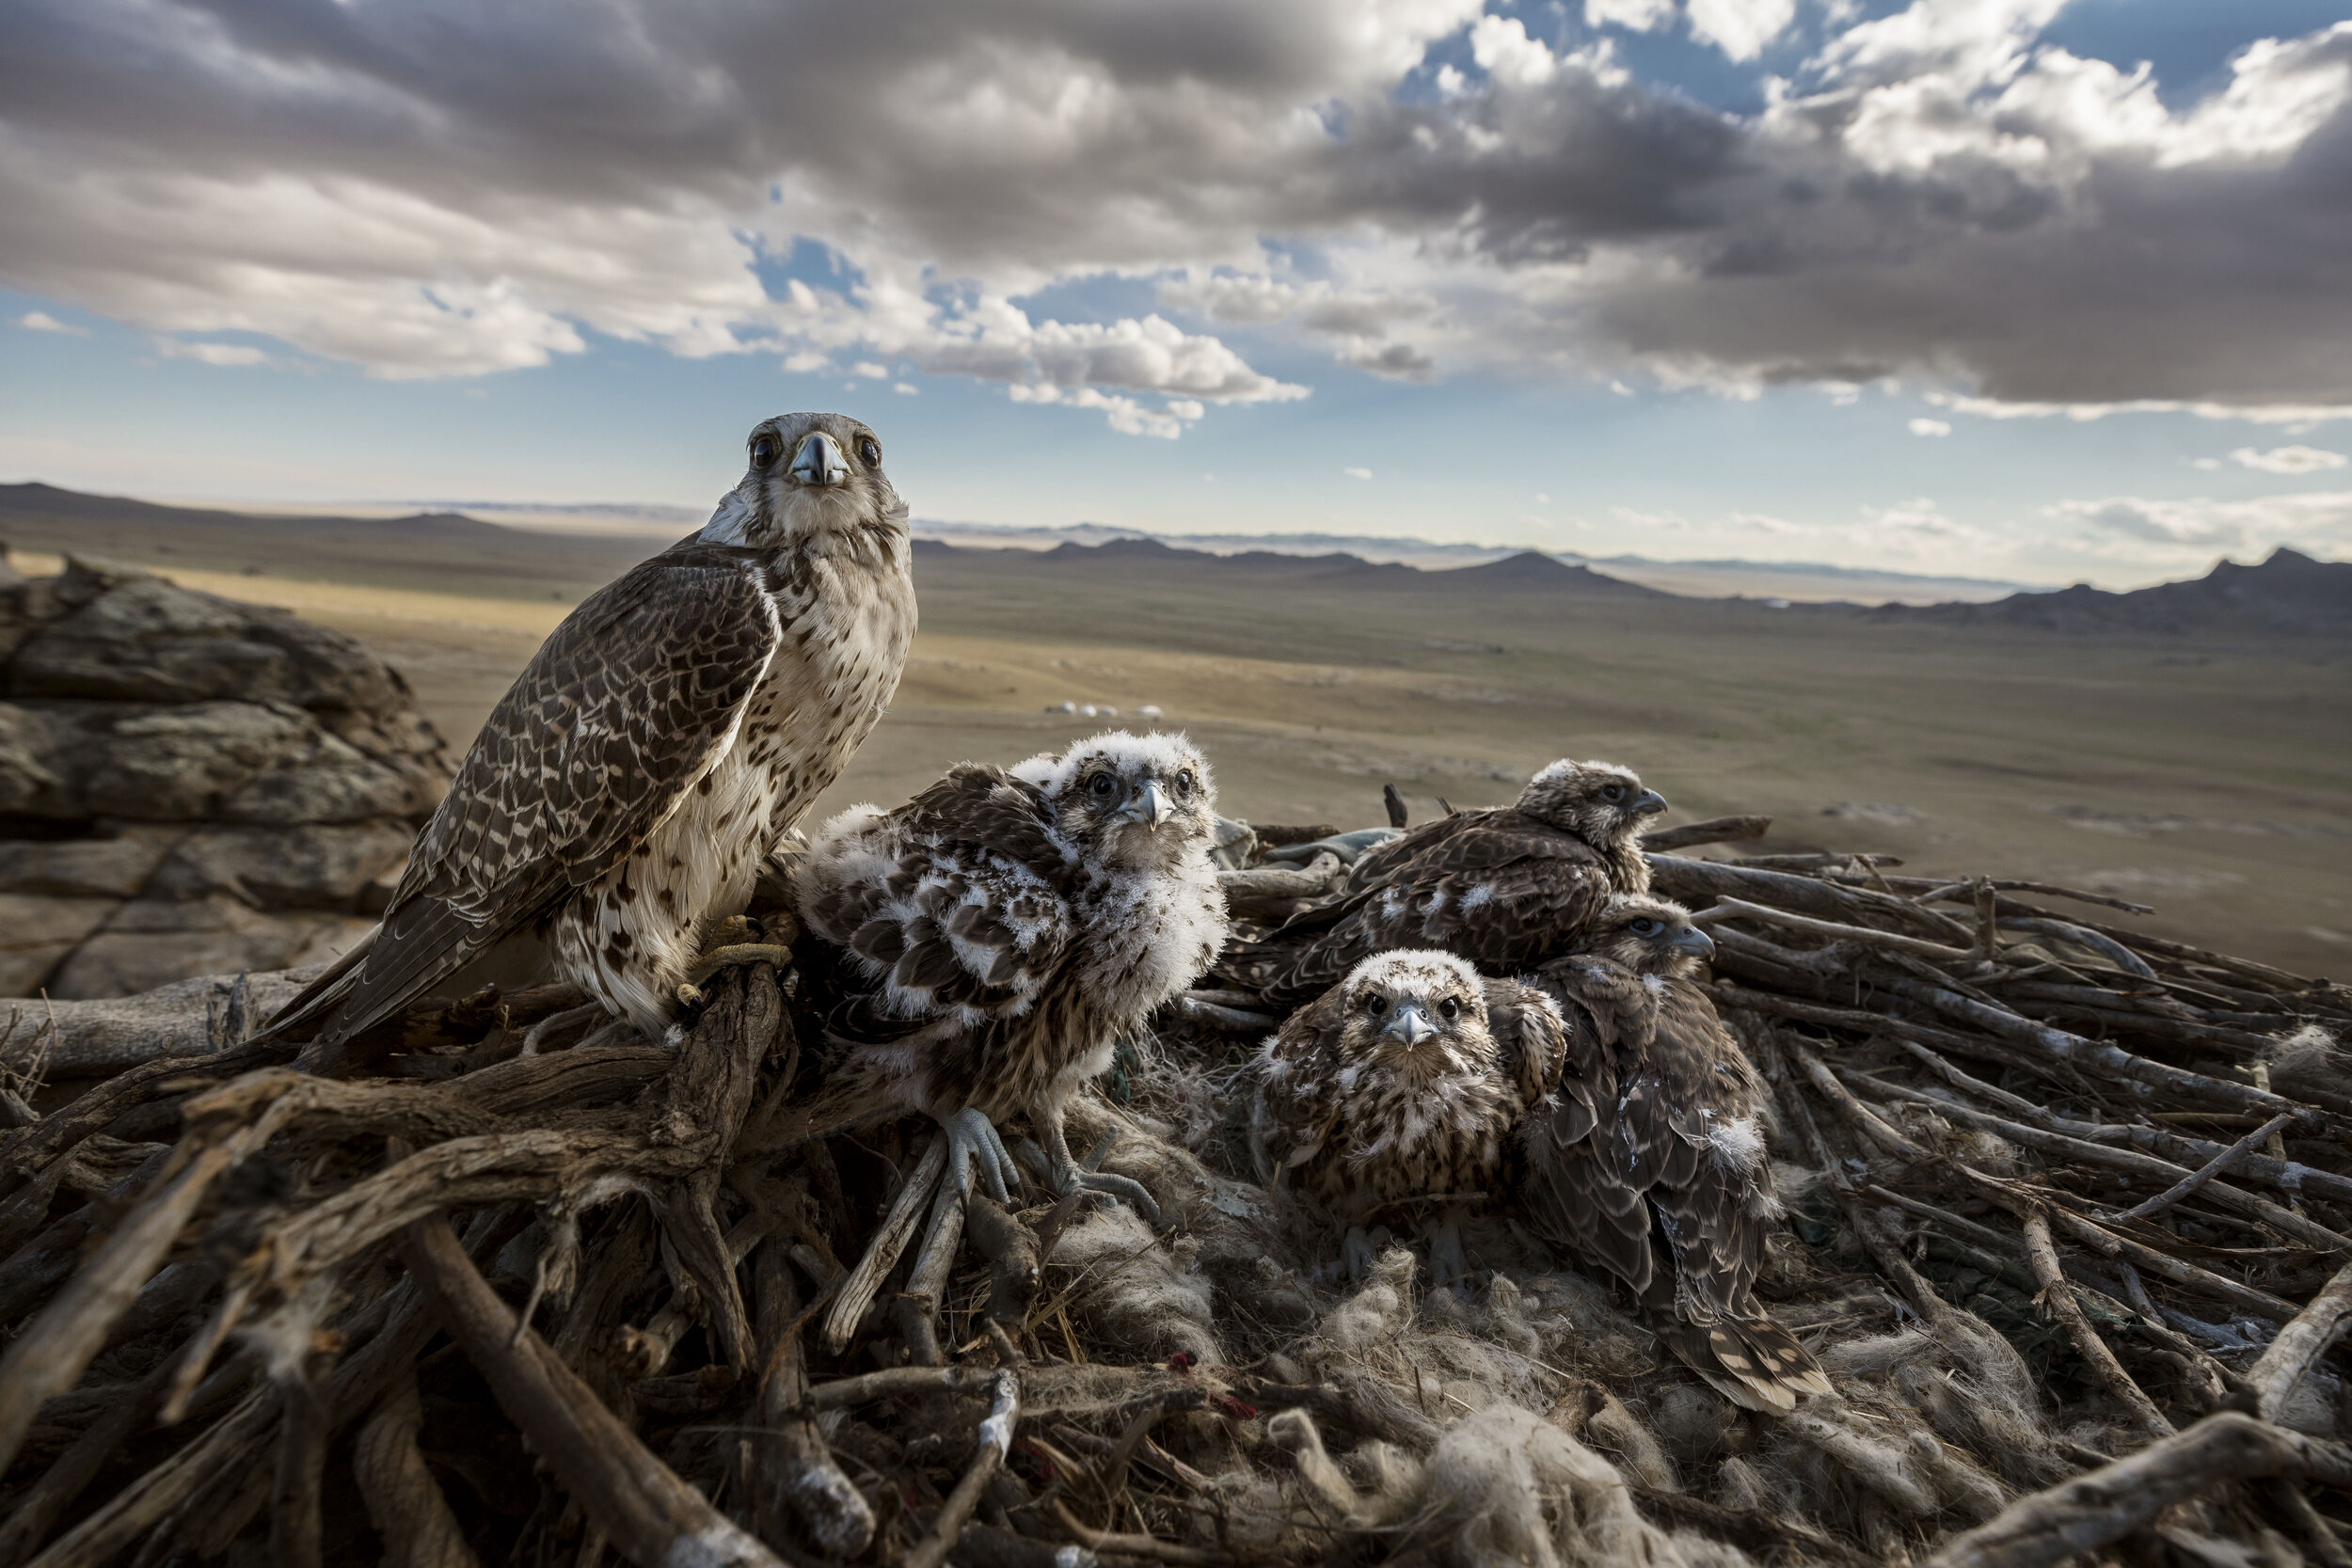 096_Brent Stirton_Getty Images_for National Geographic.jpg